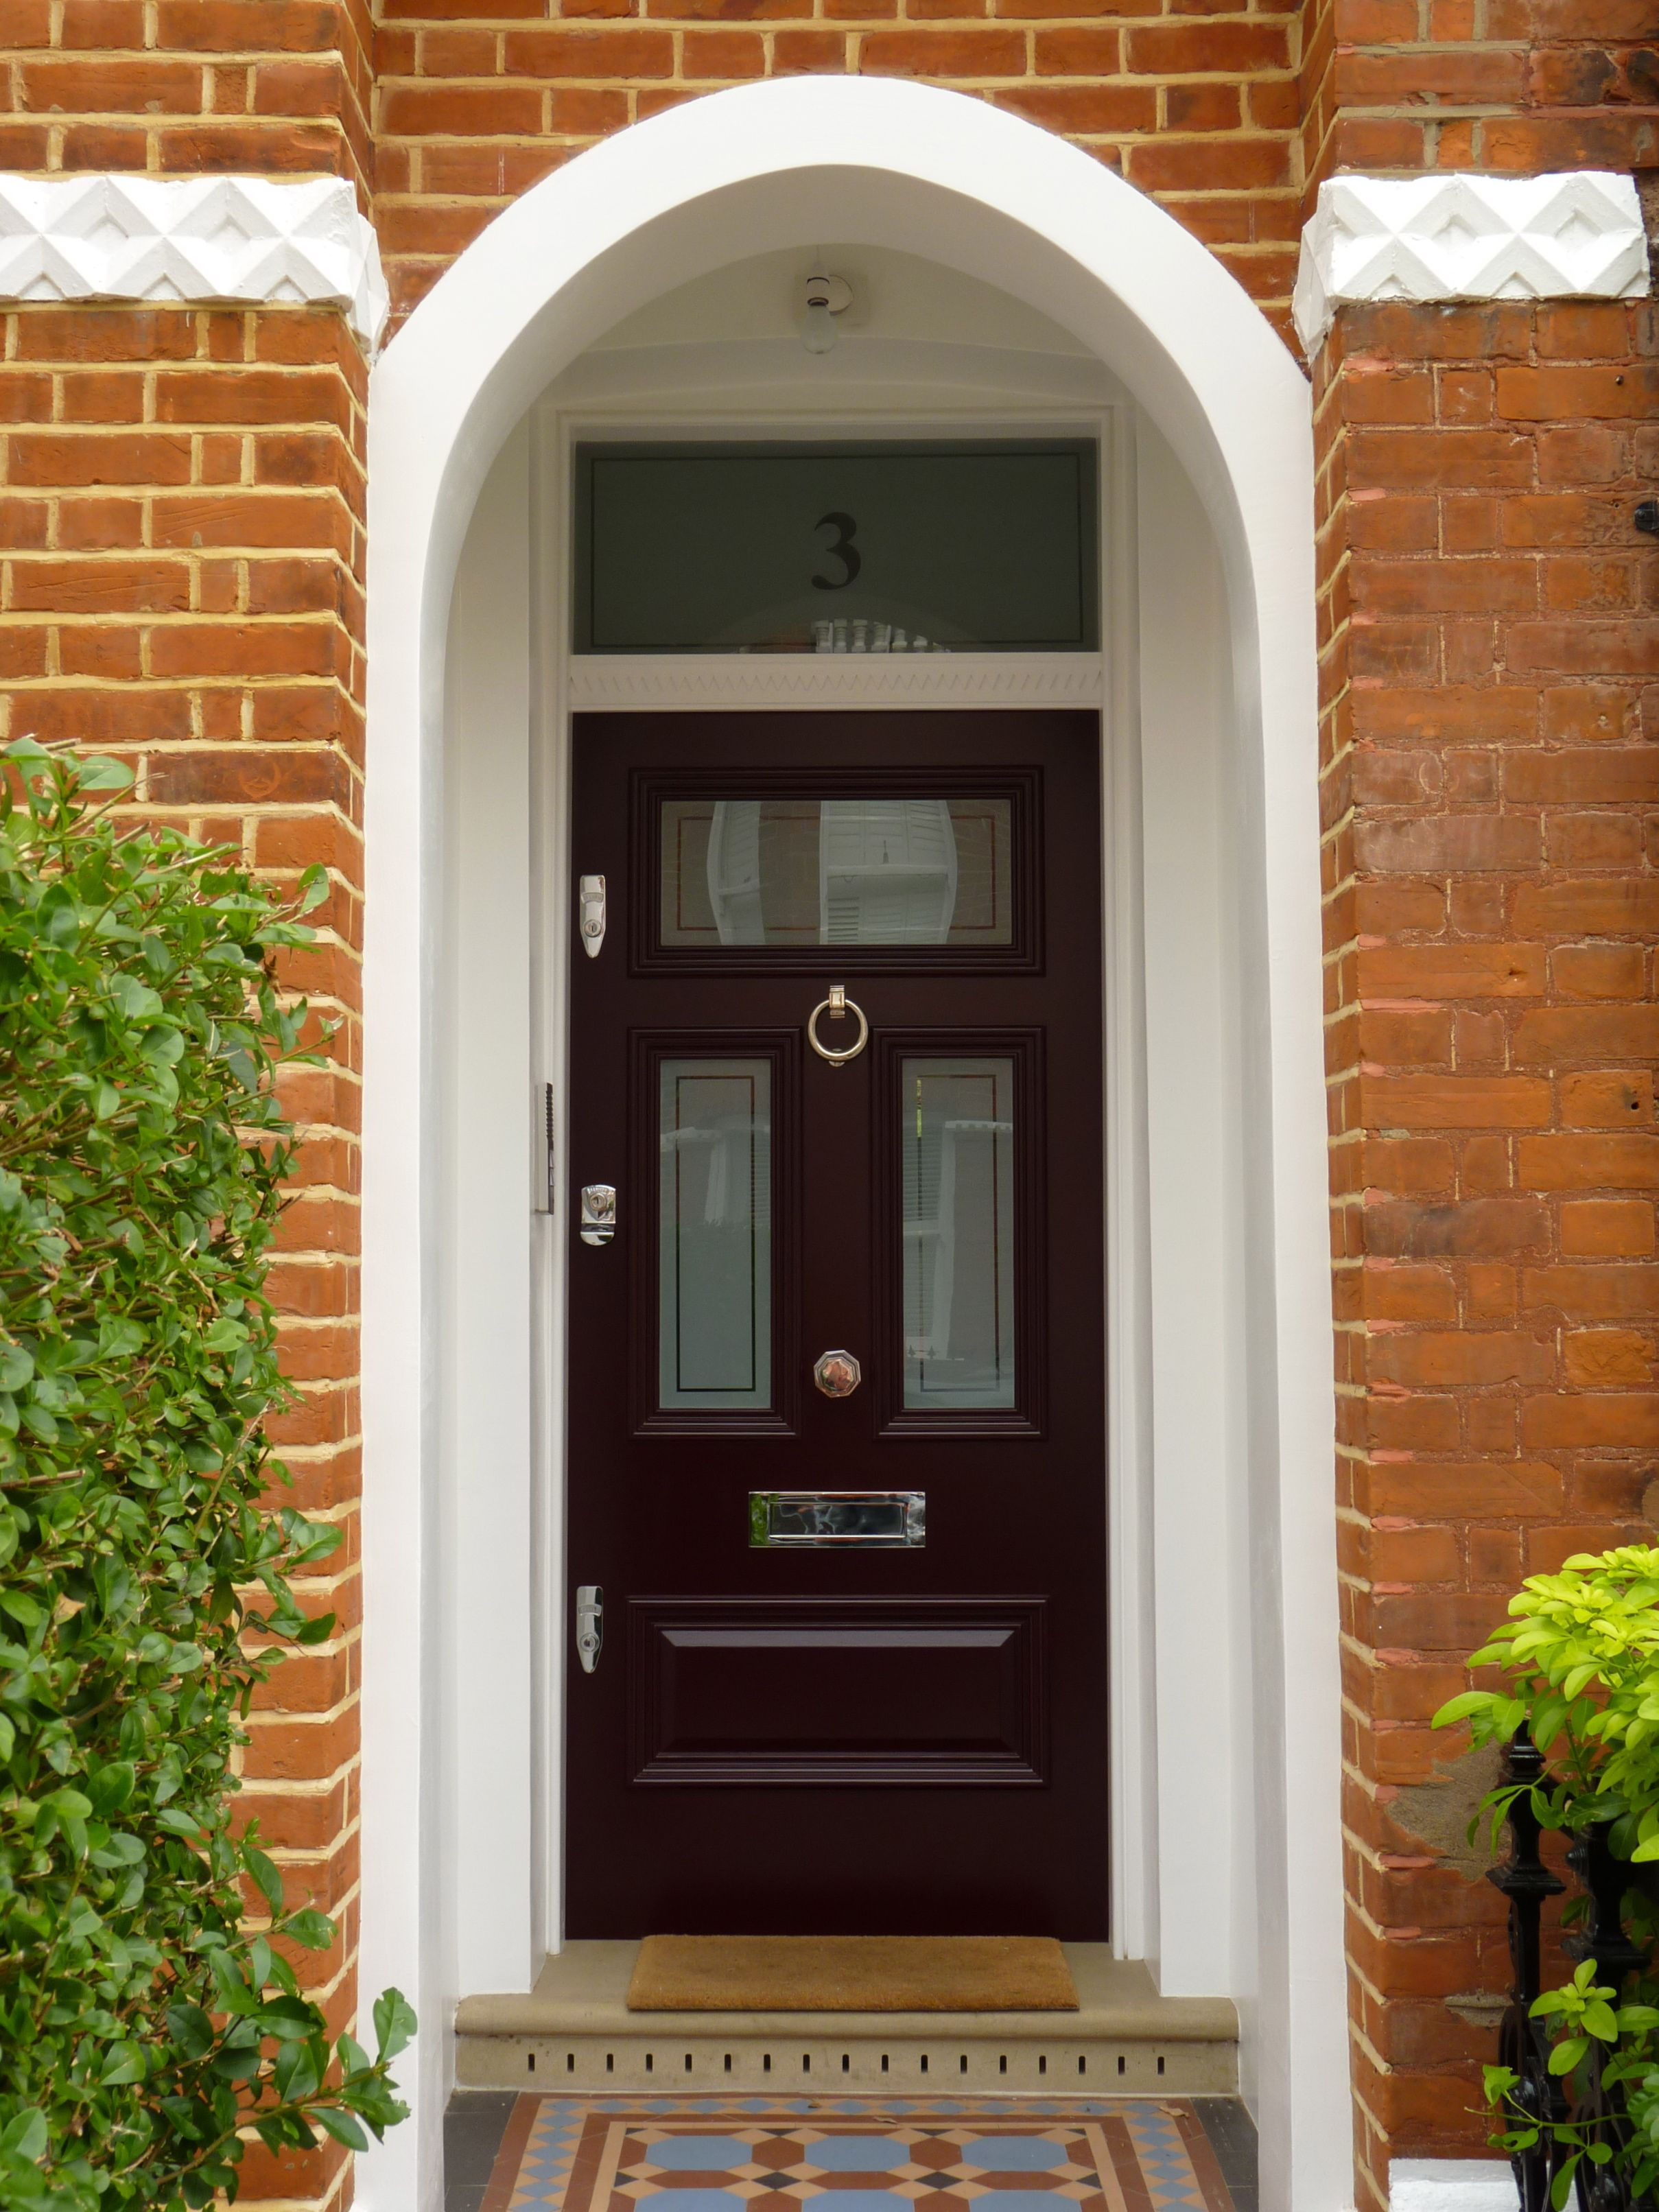 Beautifully Presented Front Porch With Edwardian Victorian Door  Were